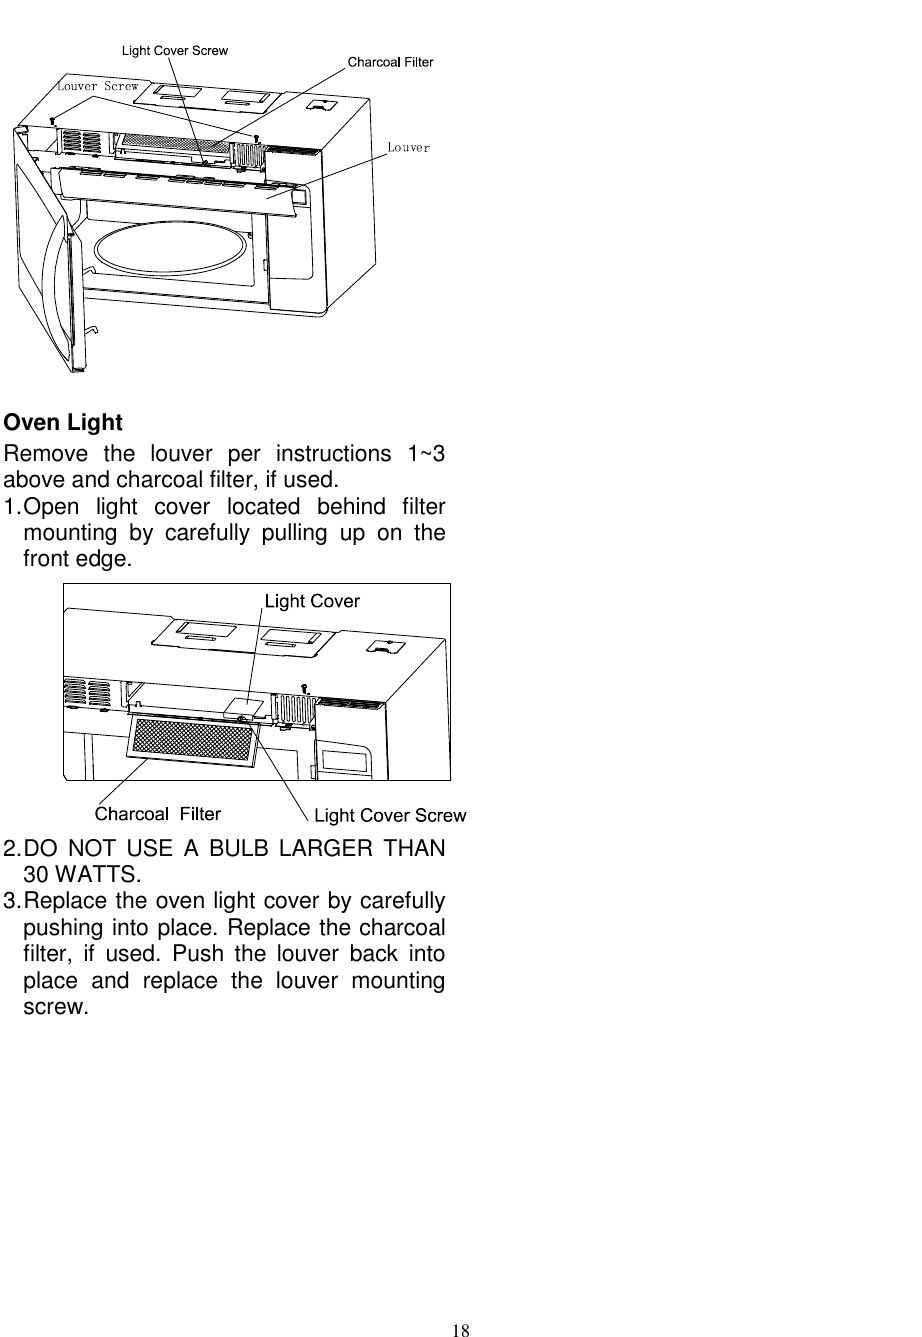 operating instructions for chef fan forced oven